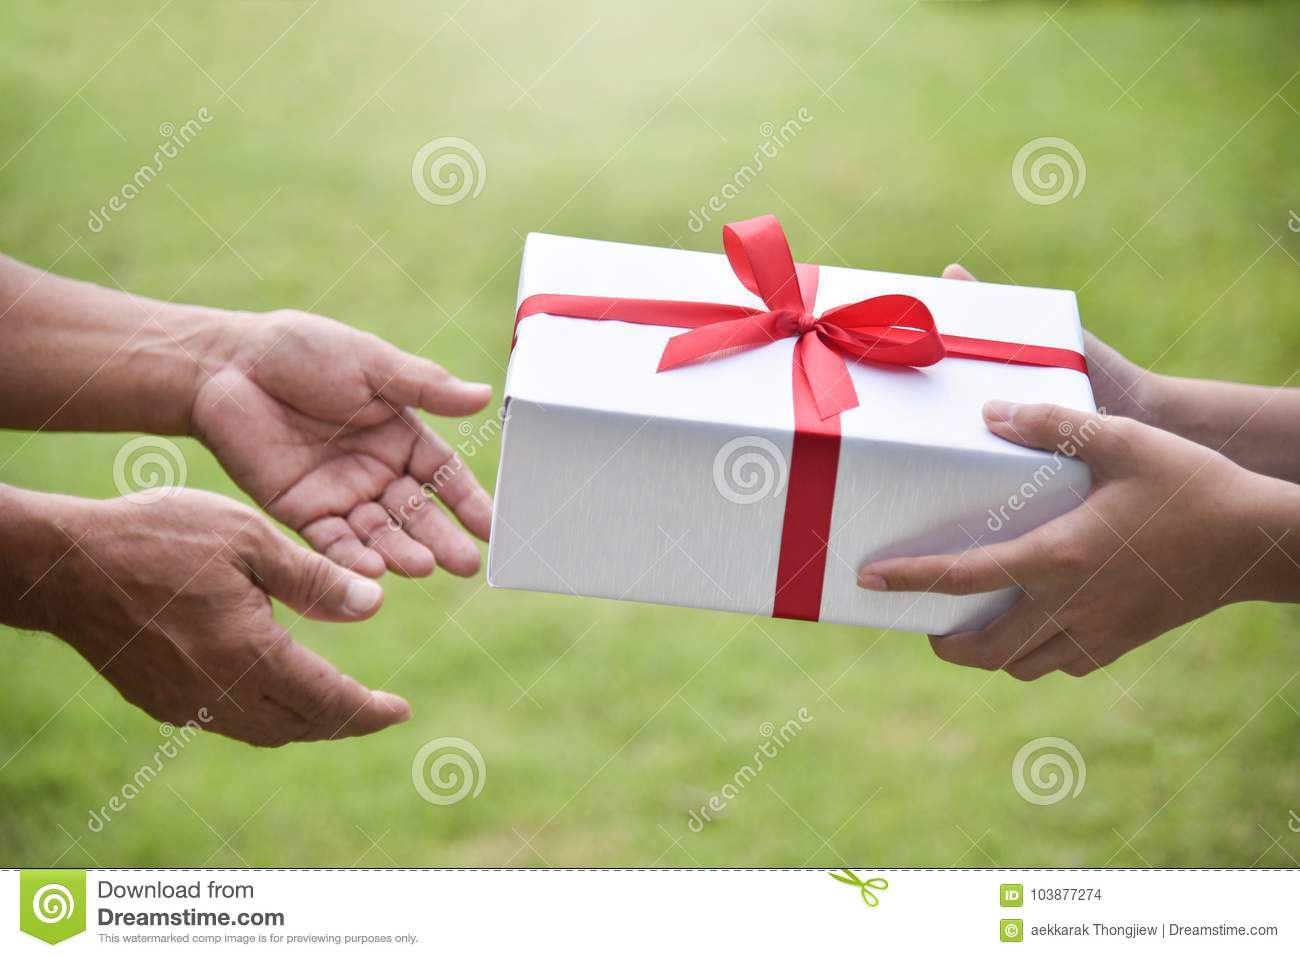 Closeup On Hands Asian Woman Giving A White Gift Box To Elderly Man Green Nature Background For Birthday Christmas And New Year